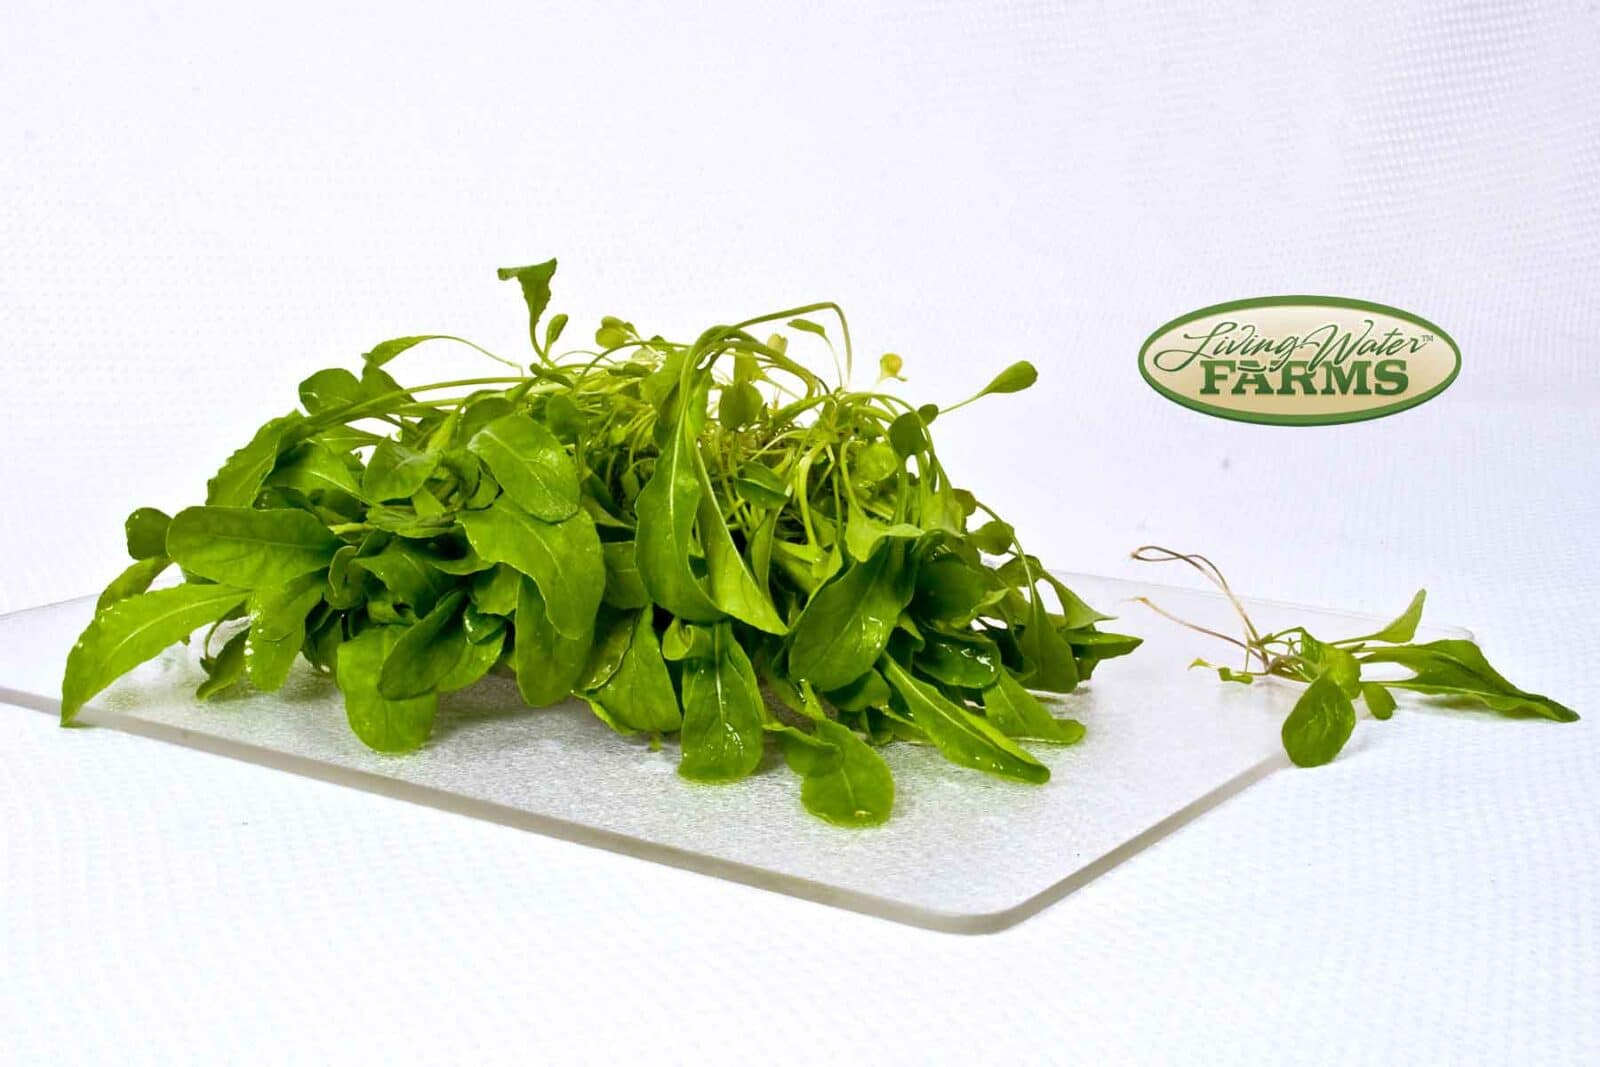 Living Water Farms Living Greens Arugula